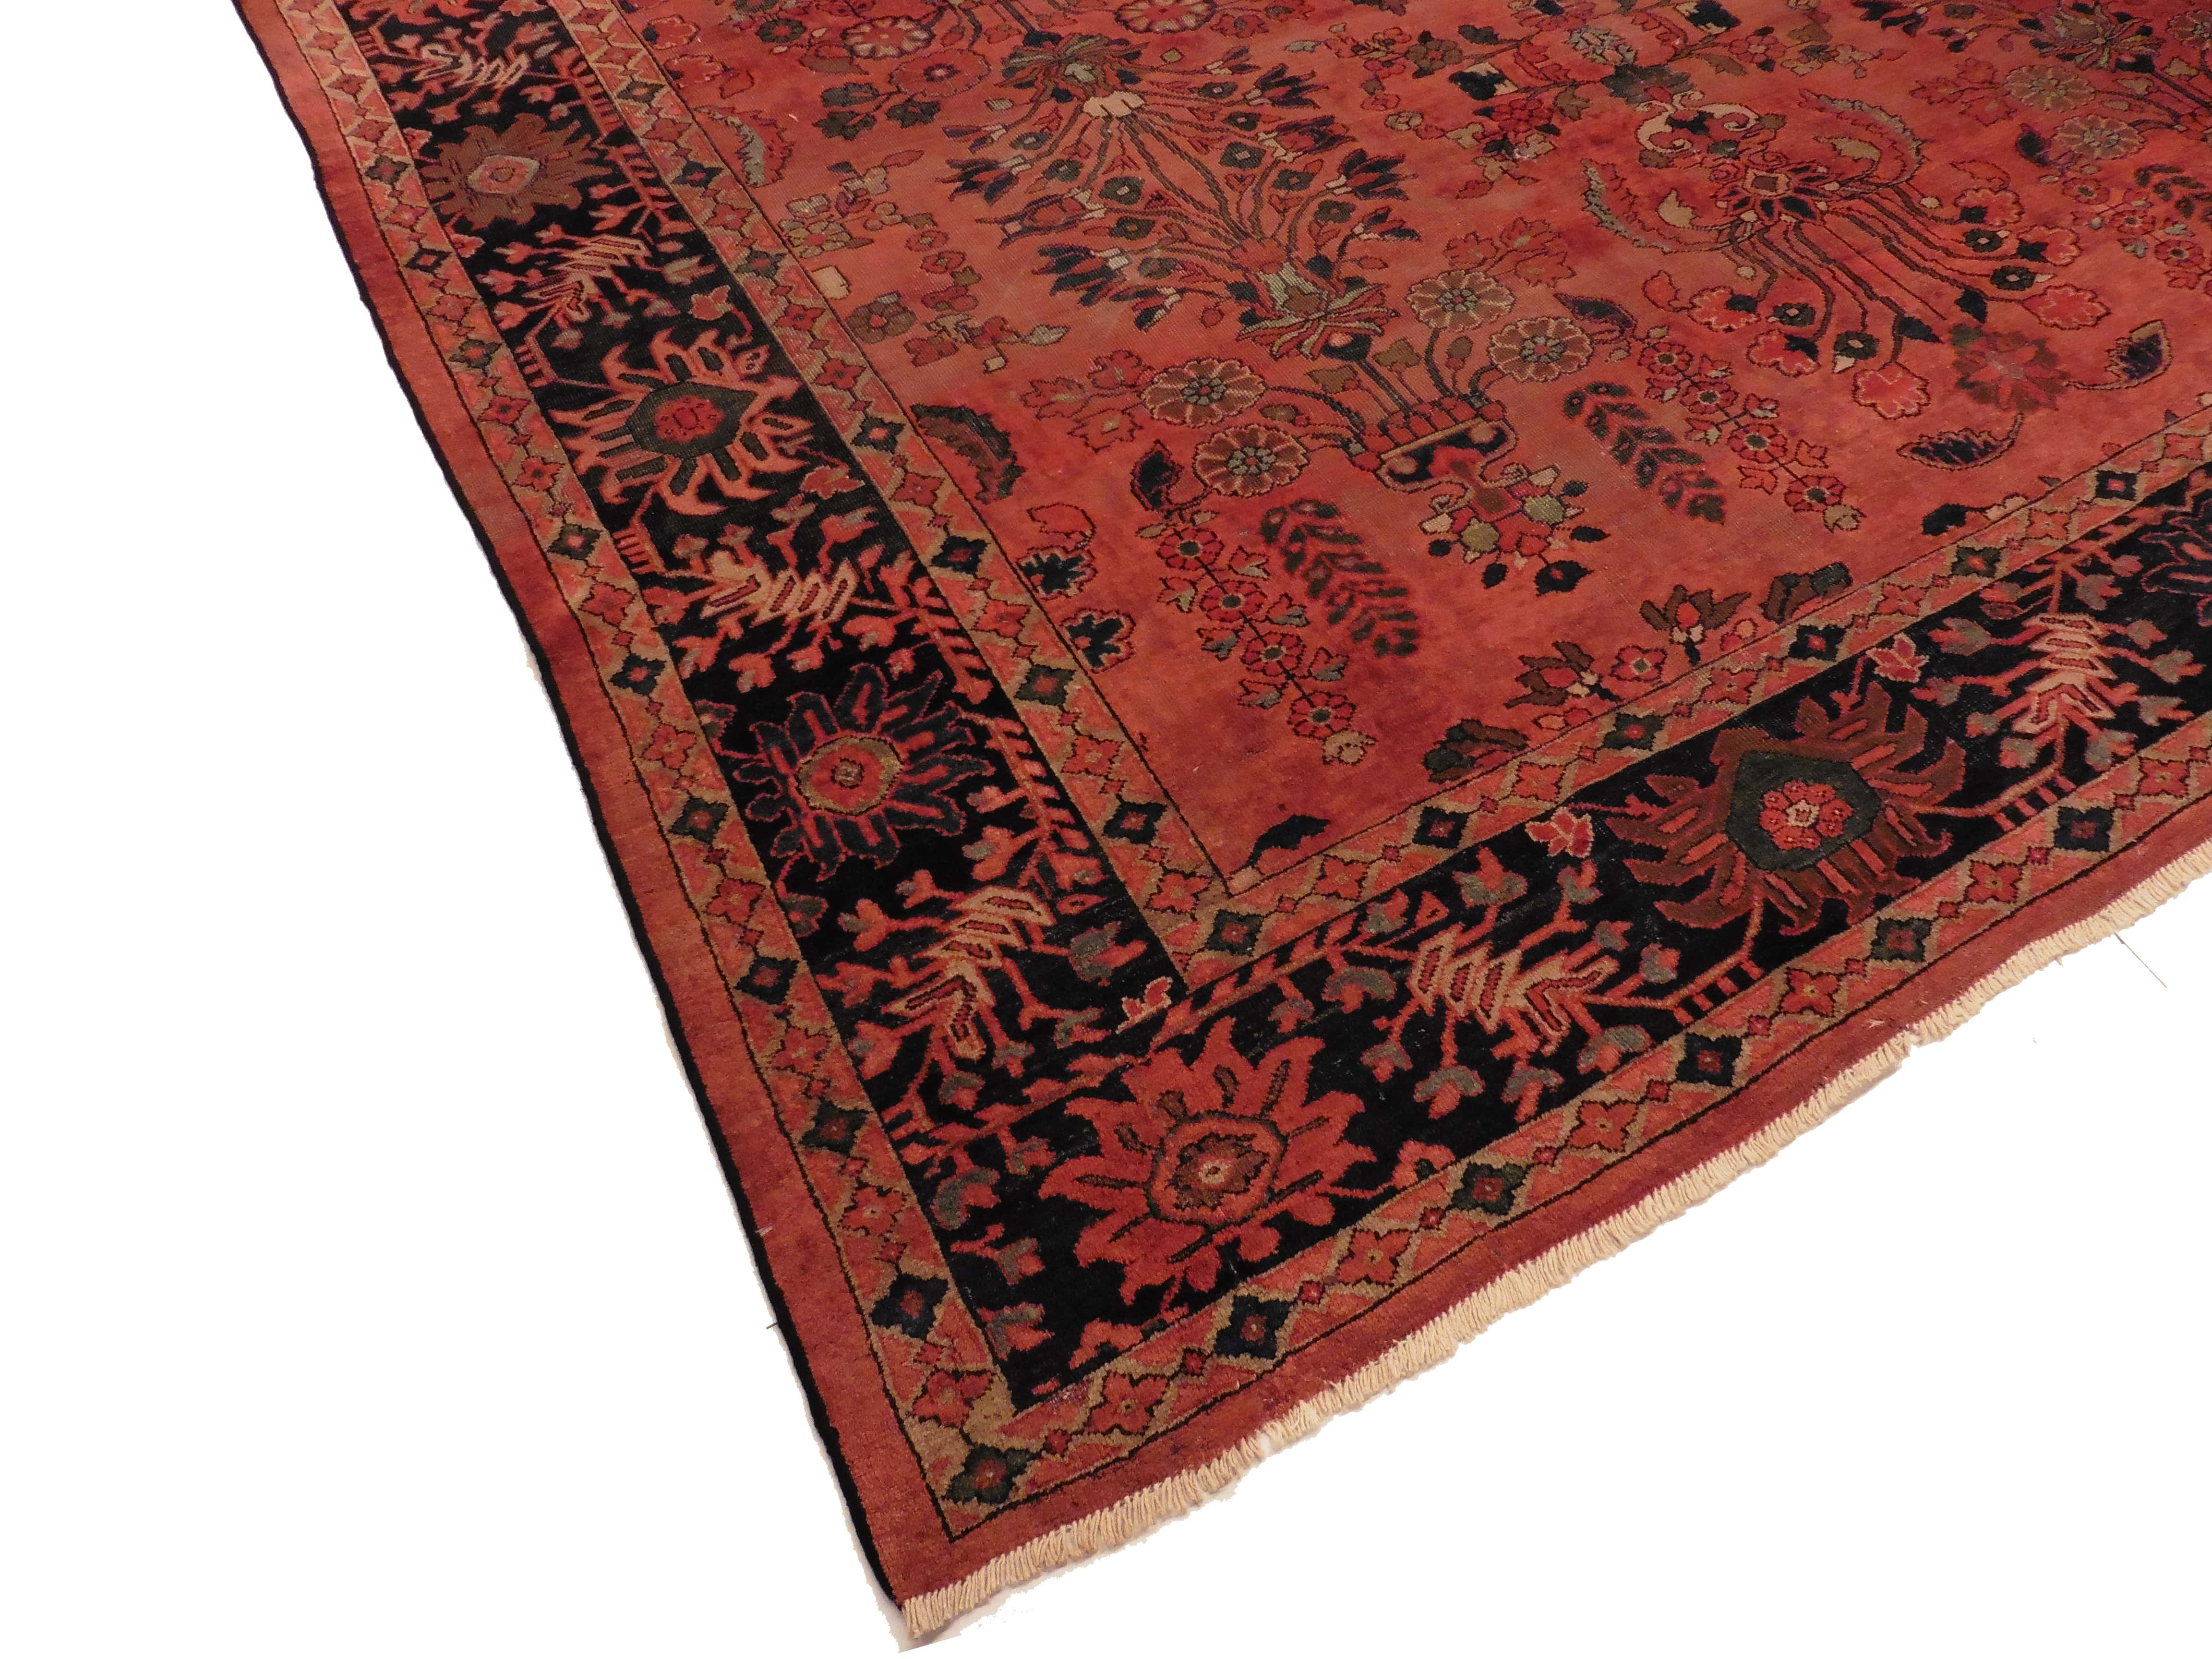 10x14 Rug Antique Persian Mahal 10x14 Wool Rug 3901